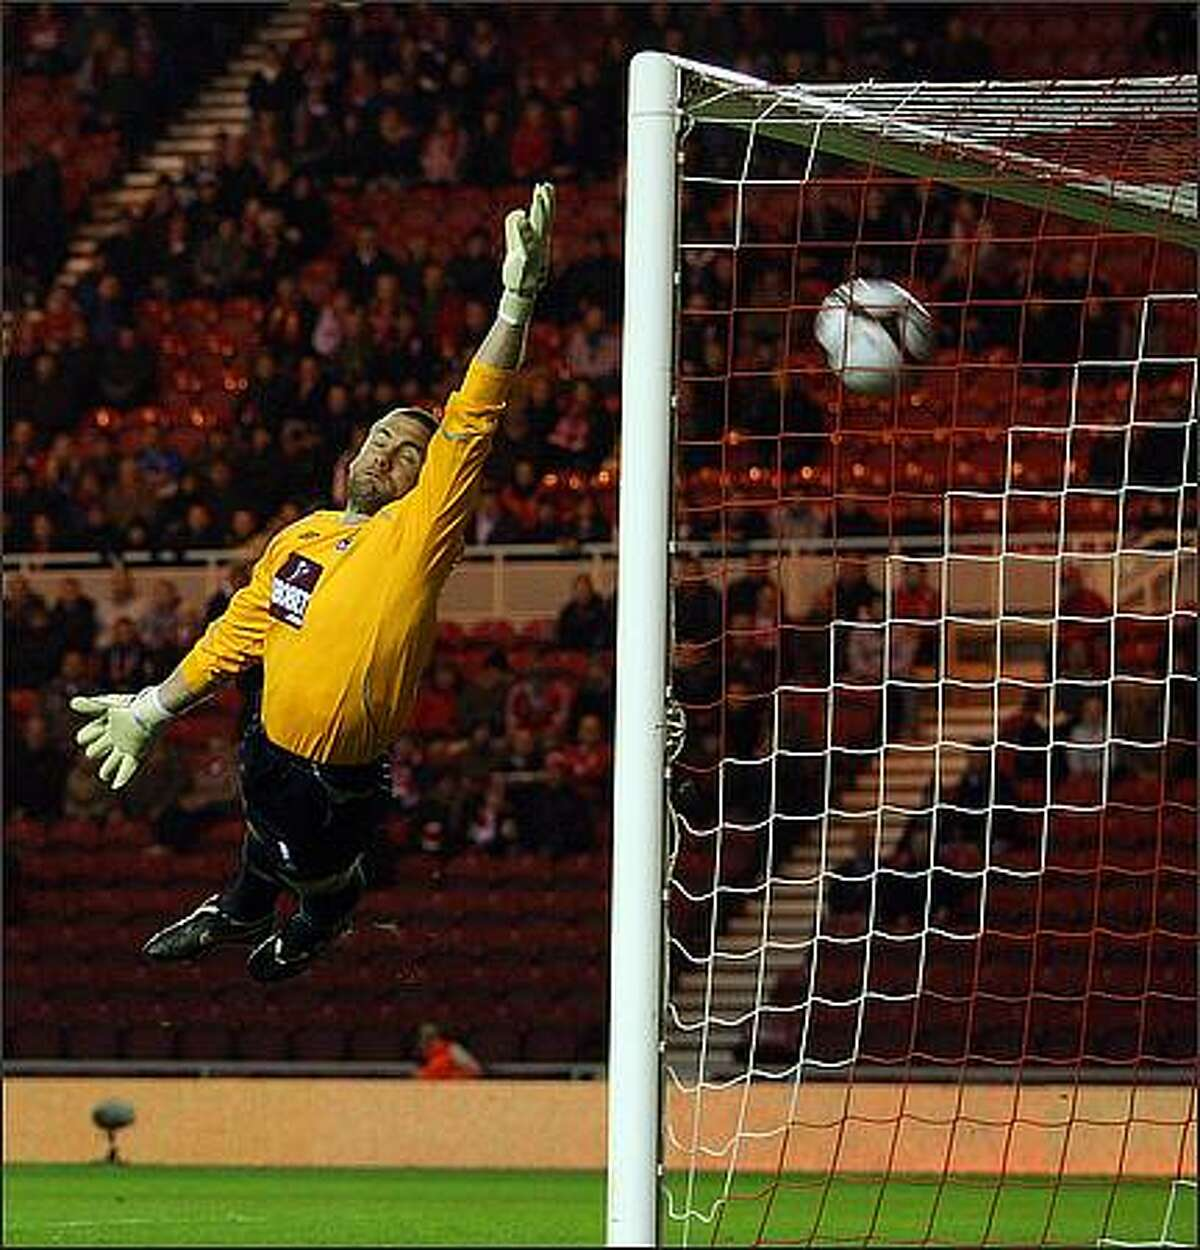 Robert Green of West Ham is beaten by a free kick from Stewart Downing during the FA Cup 5th Round Replay match sponsored by e.on between Middlesbrough and West Ham United at The Riverside Stadium in Middlesbrough, England. (Photo by Ross Kinnaird/Getty Images)